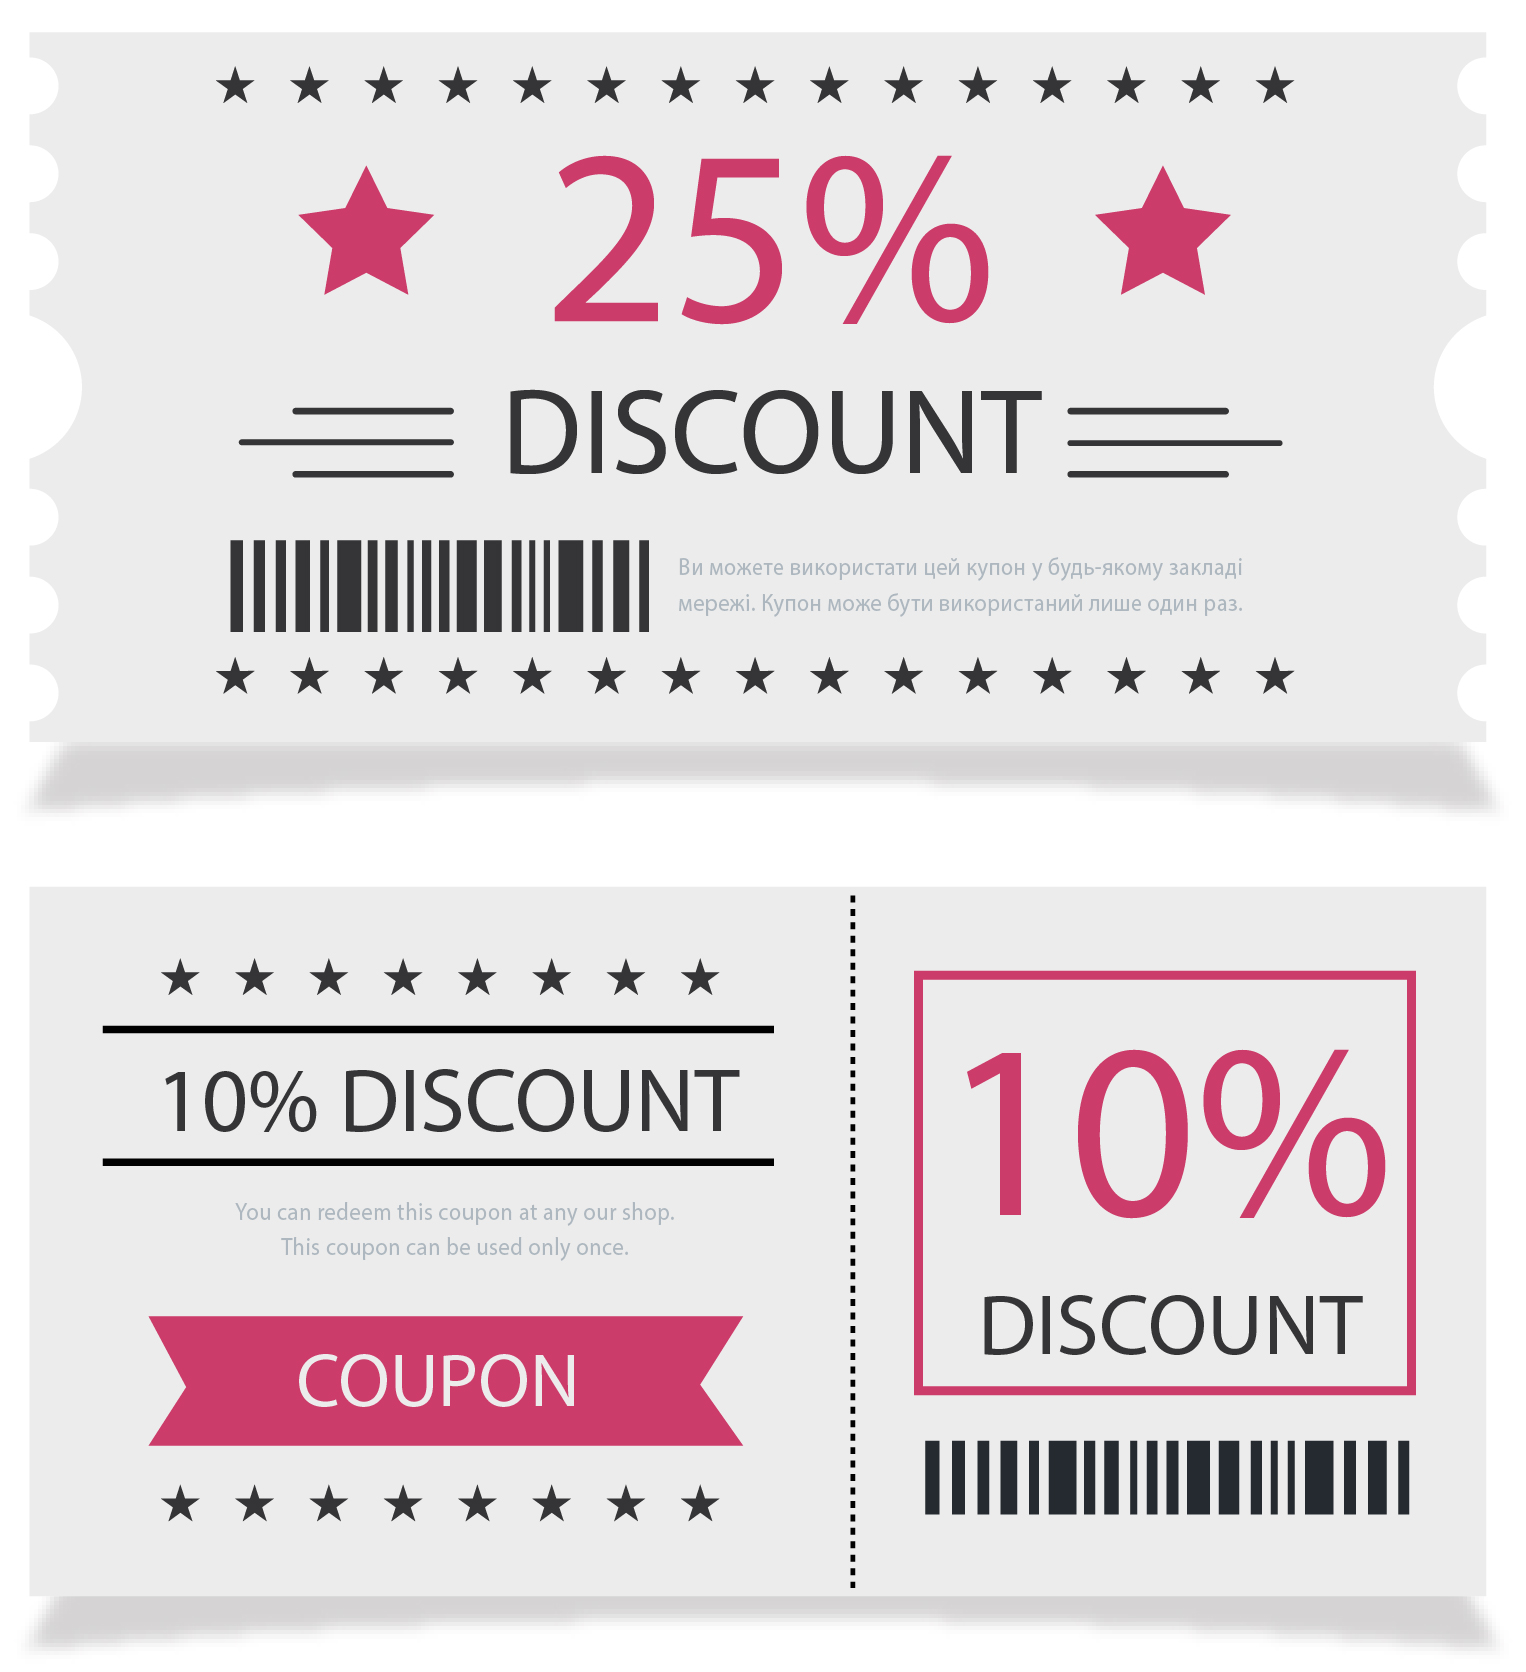 Coupons and certificates